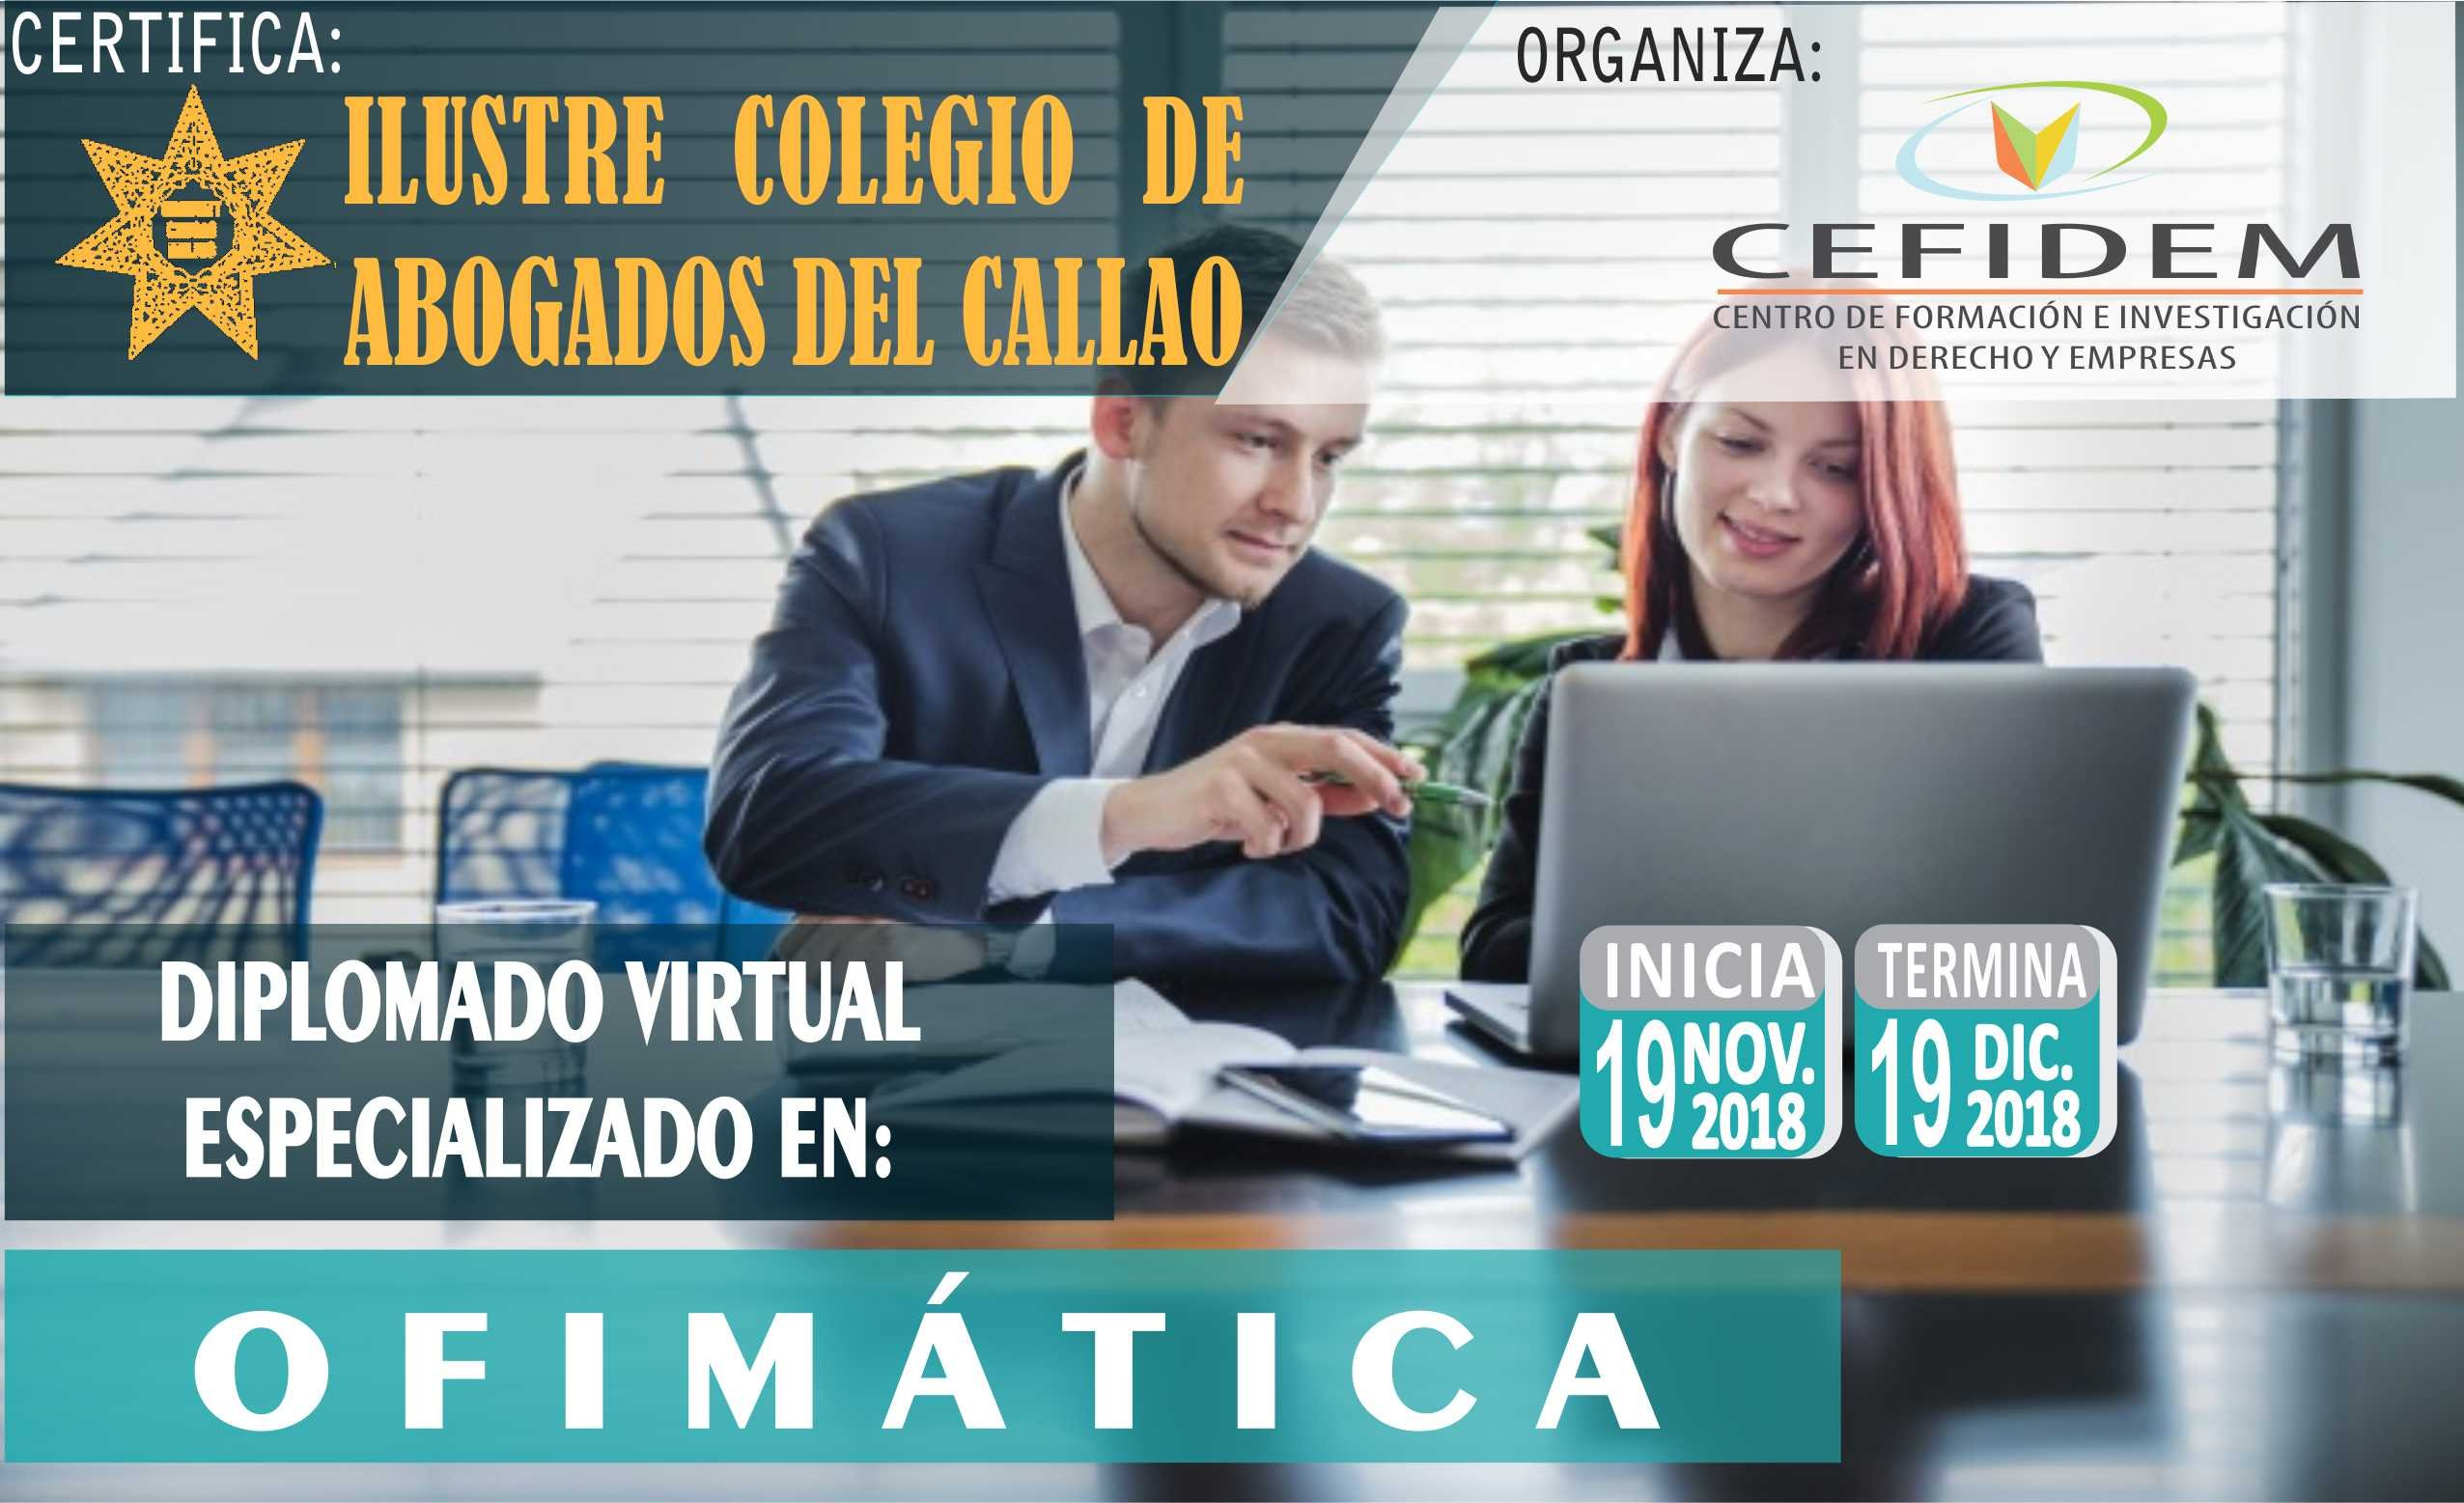 DIPLOMADO VIRTUAL ESPECIALIZADO EN OFIMÁTICA (19/11/18)